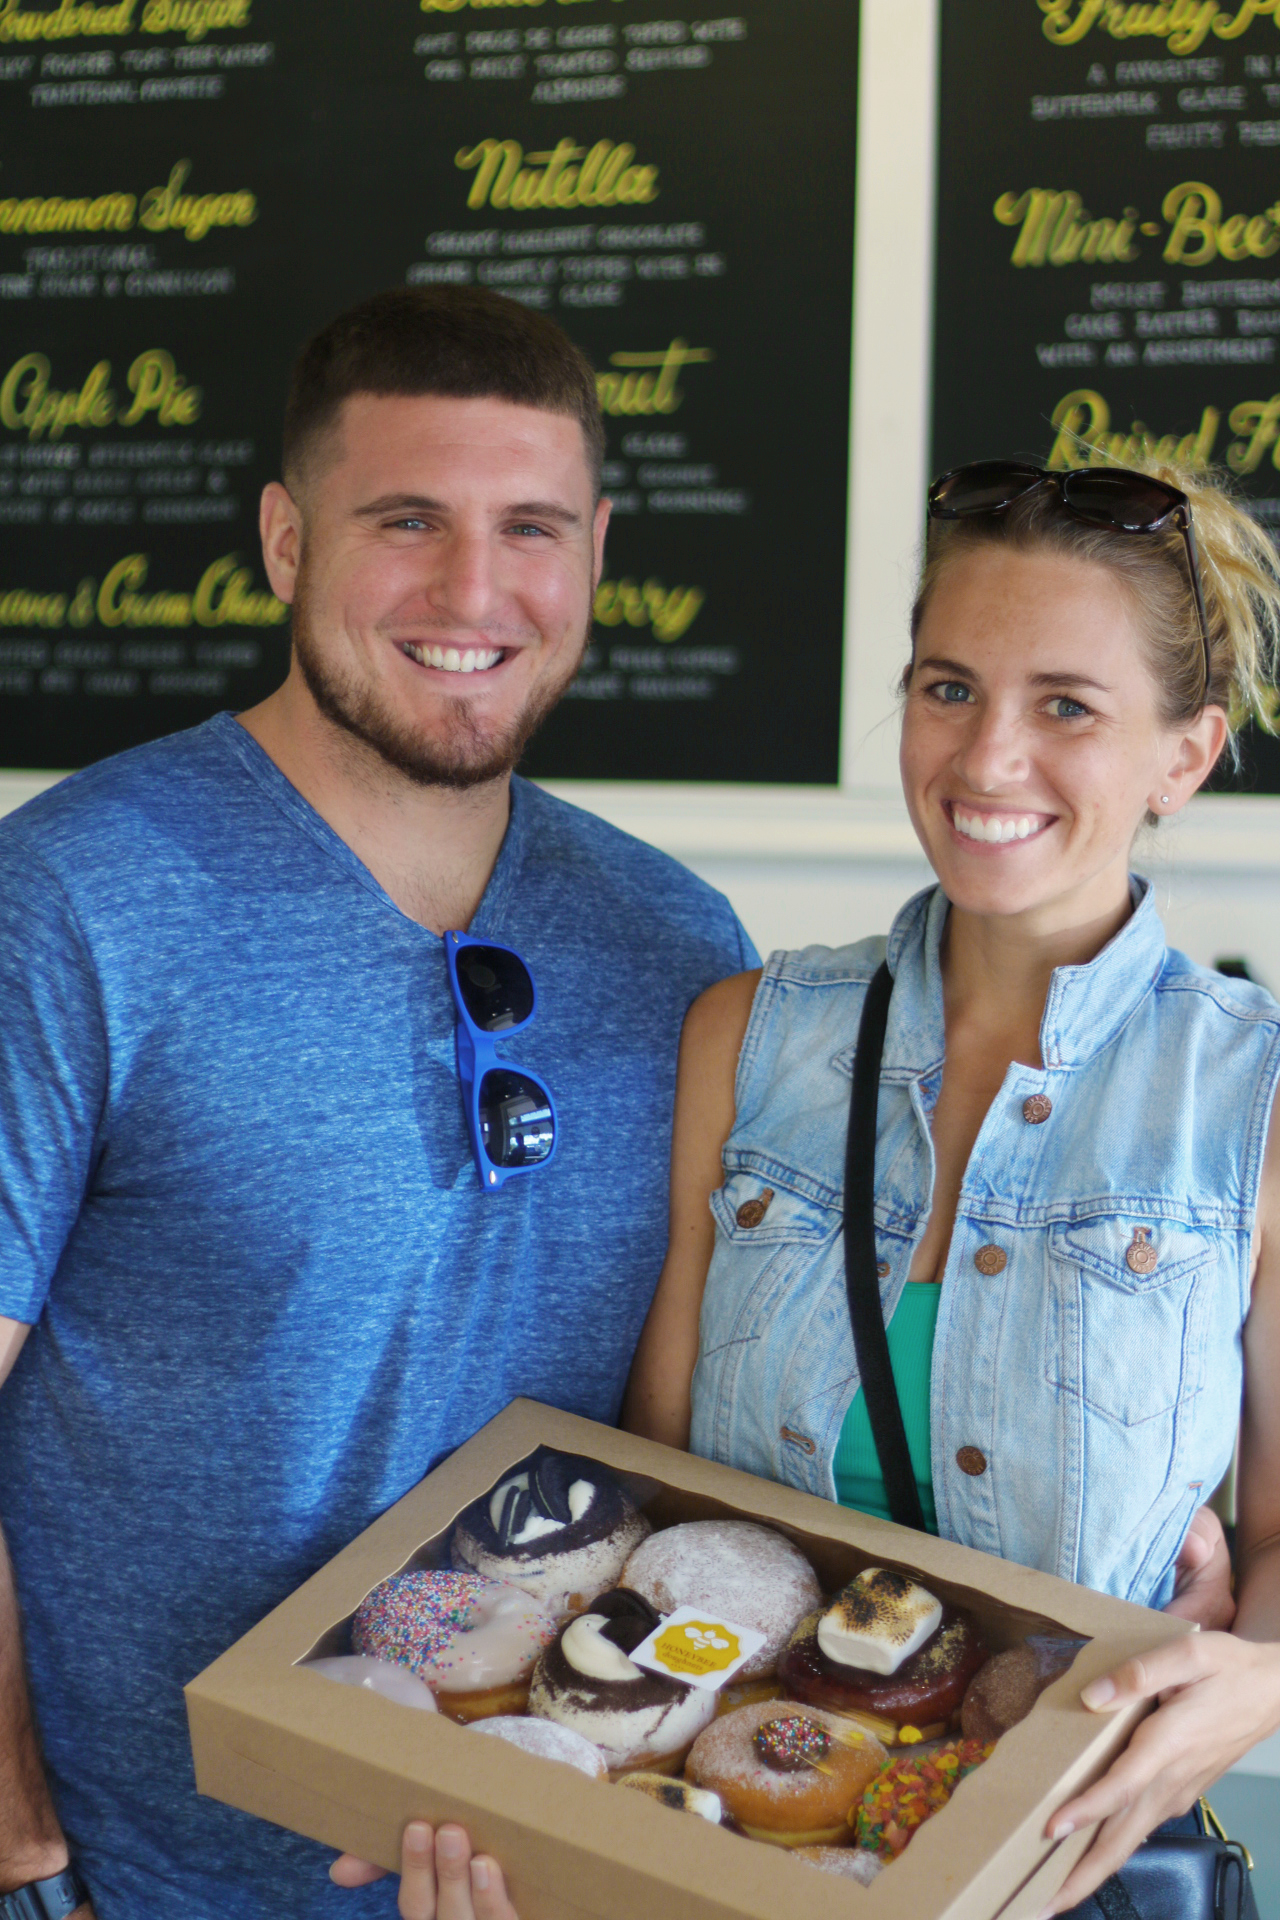 Honeybee Doughnuts in South Miami are the best donuts in South Florida.